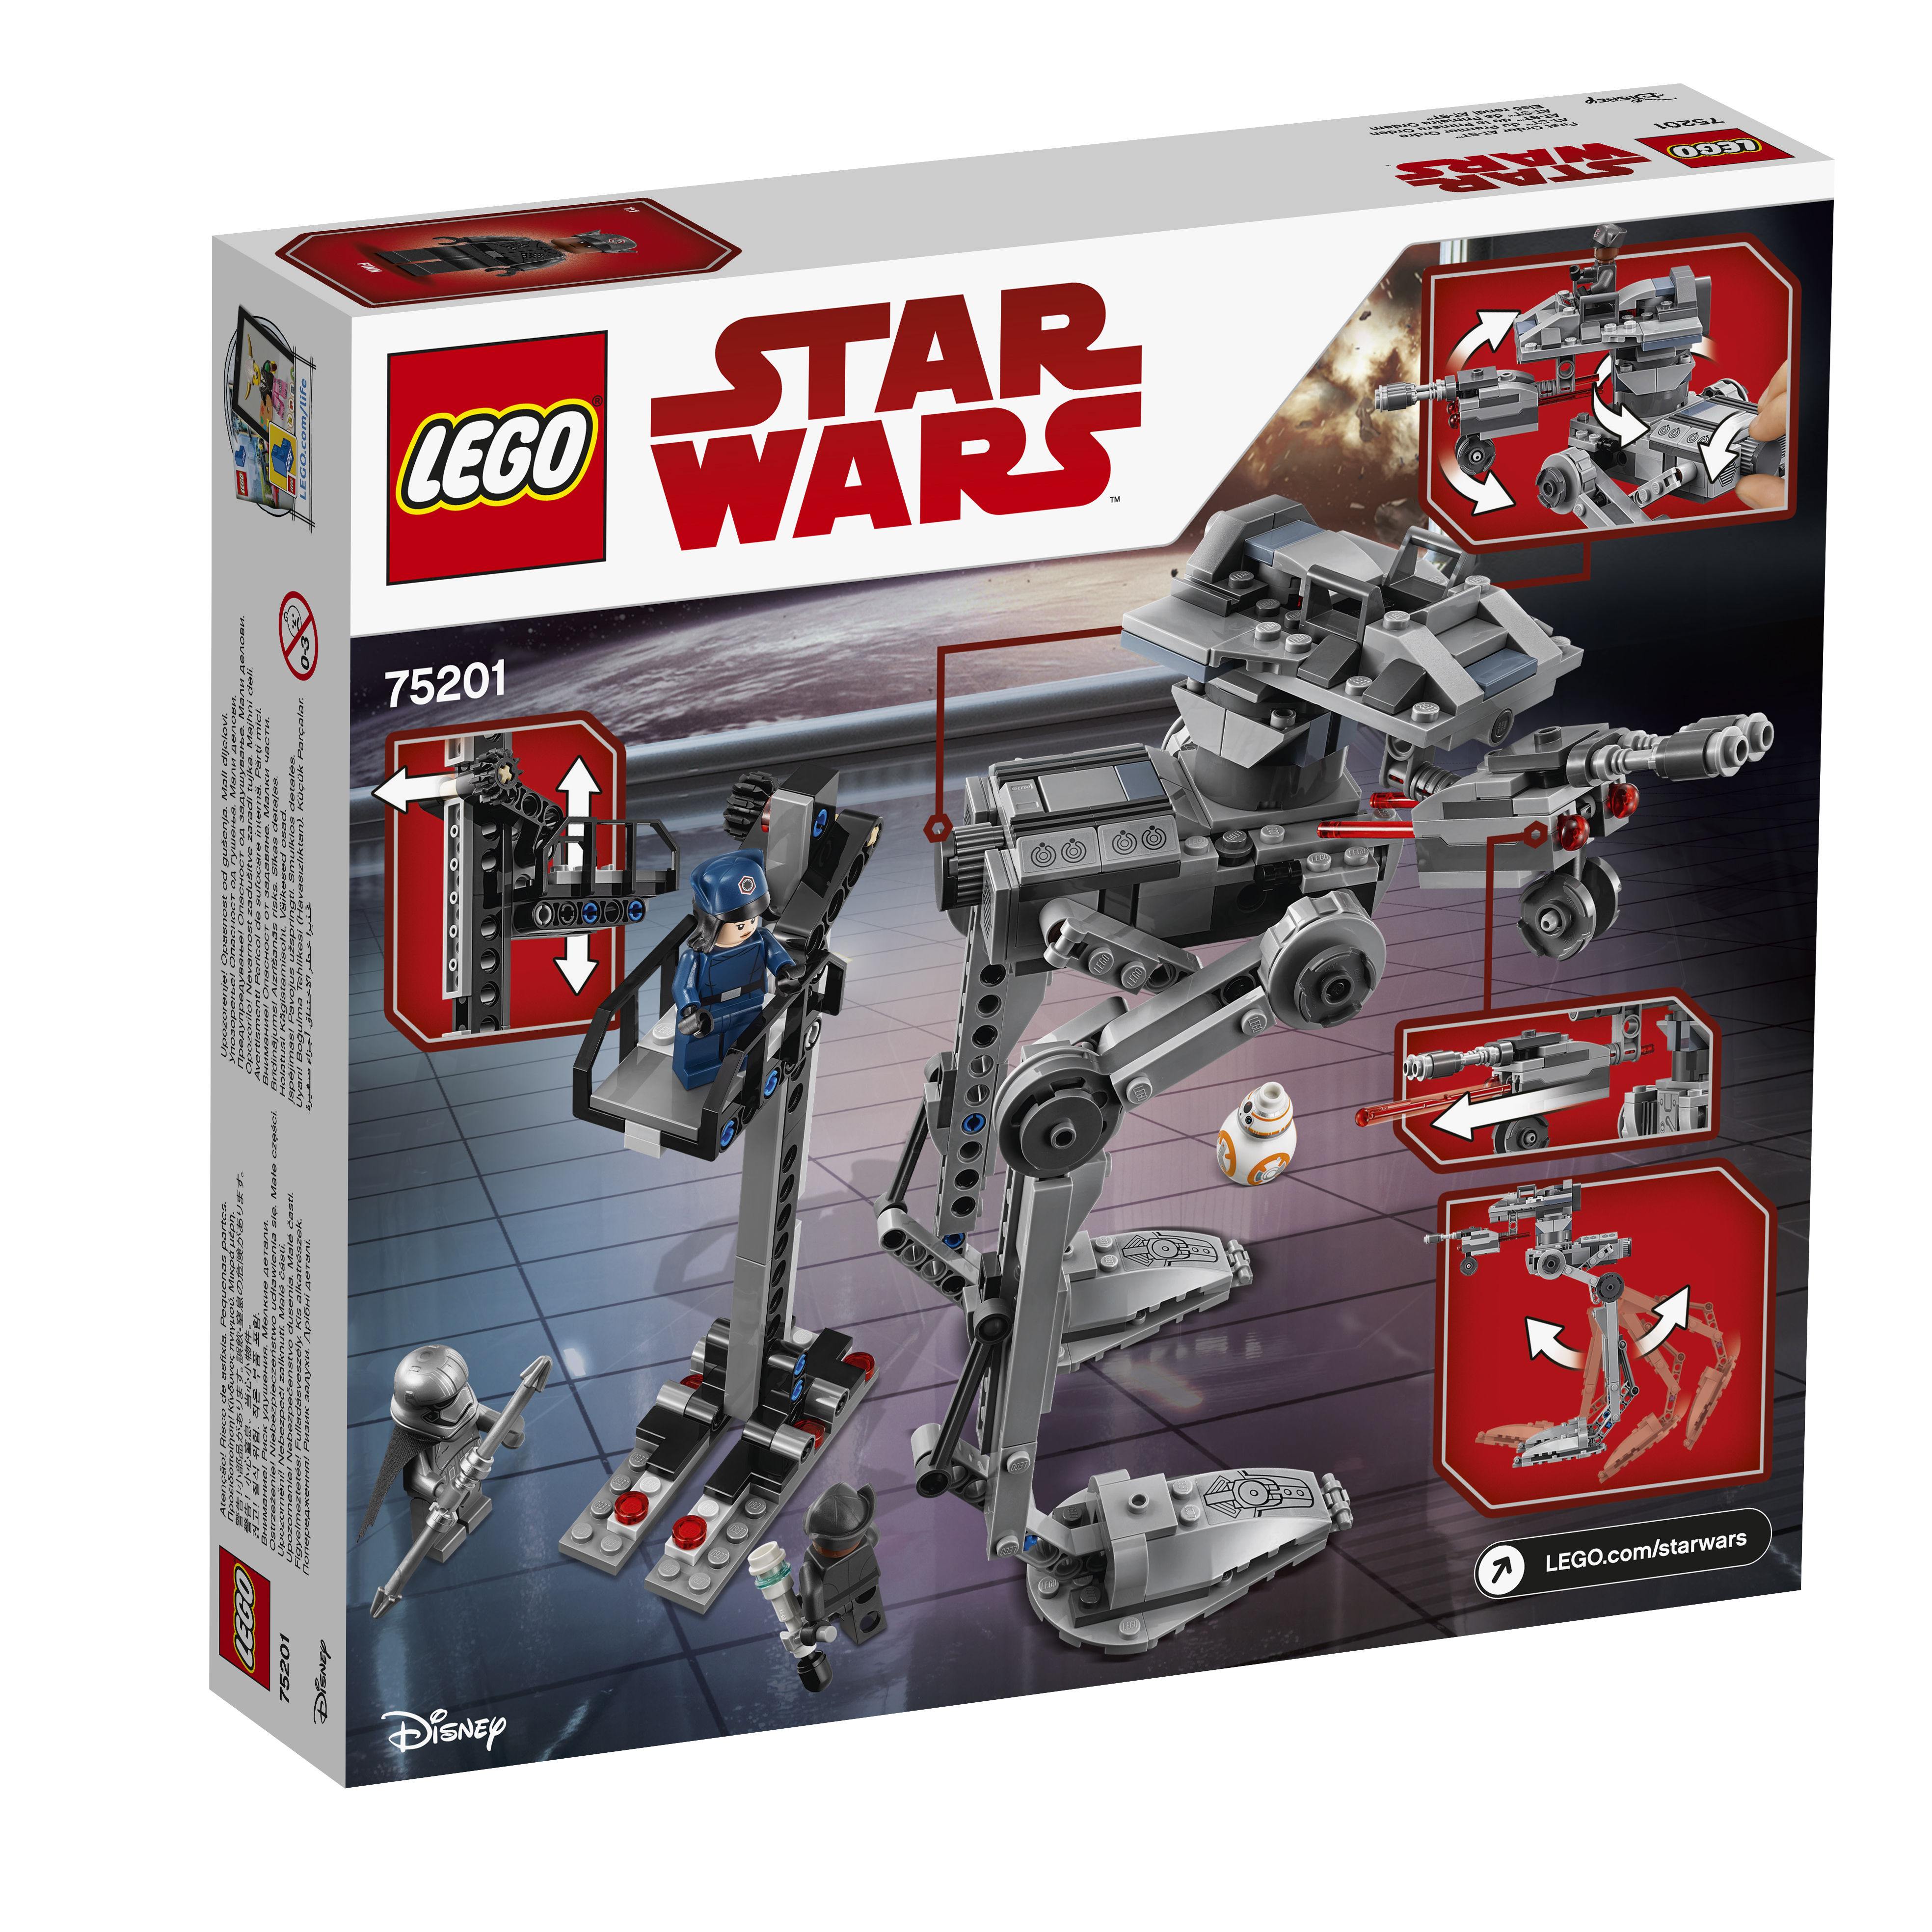 Details About 75201 Lego Star Wars First Order At St 370 Pieces Age 8 New Release 2018